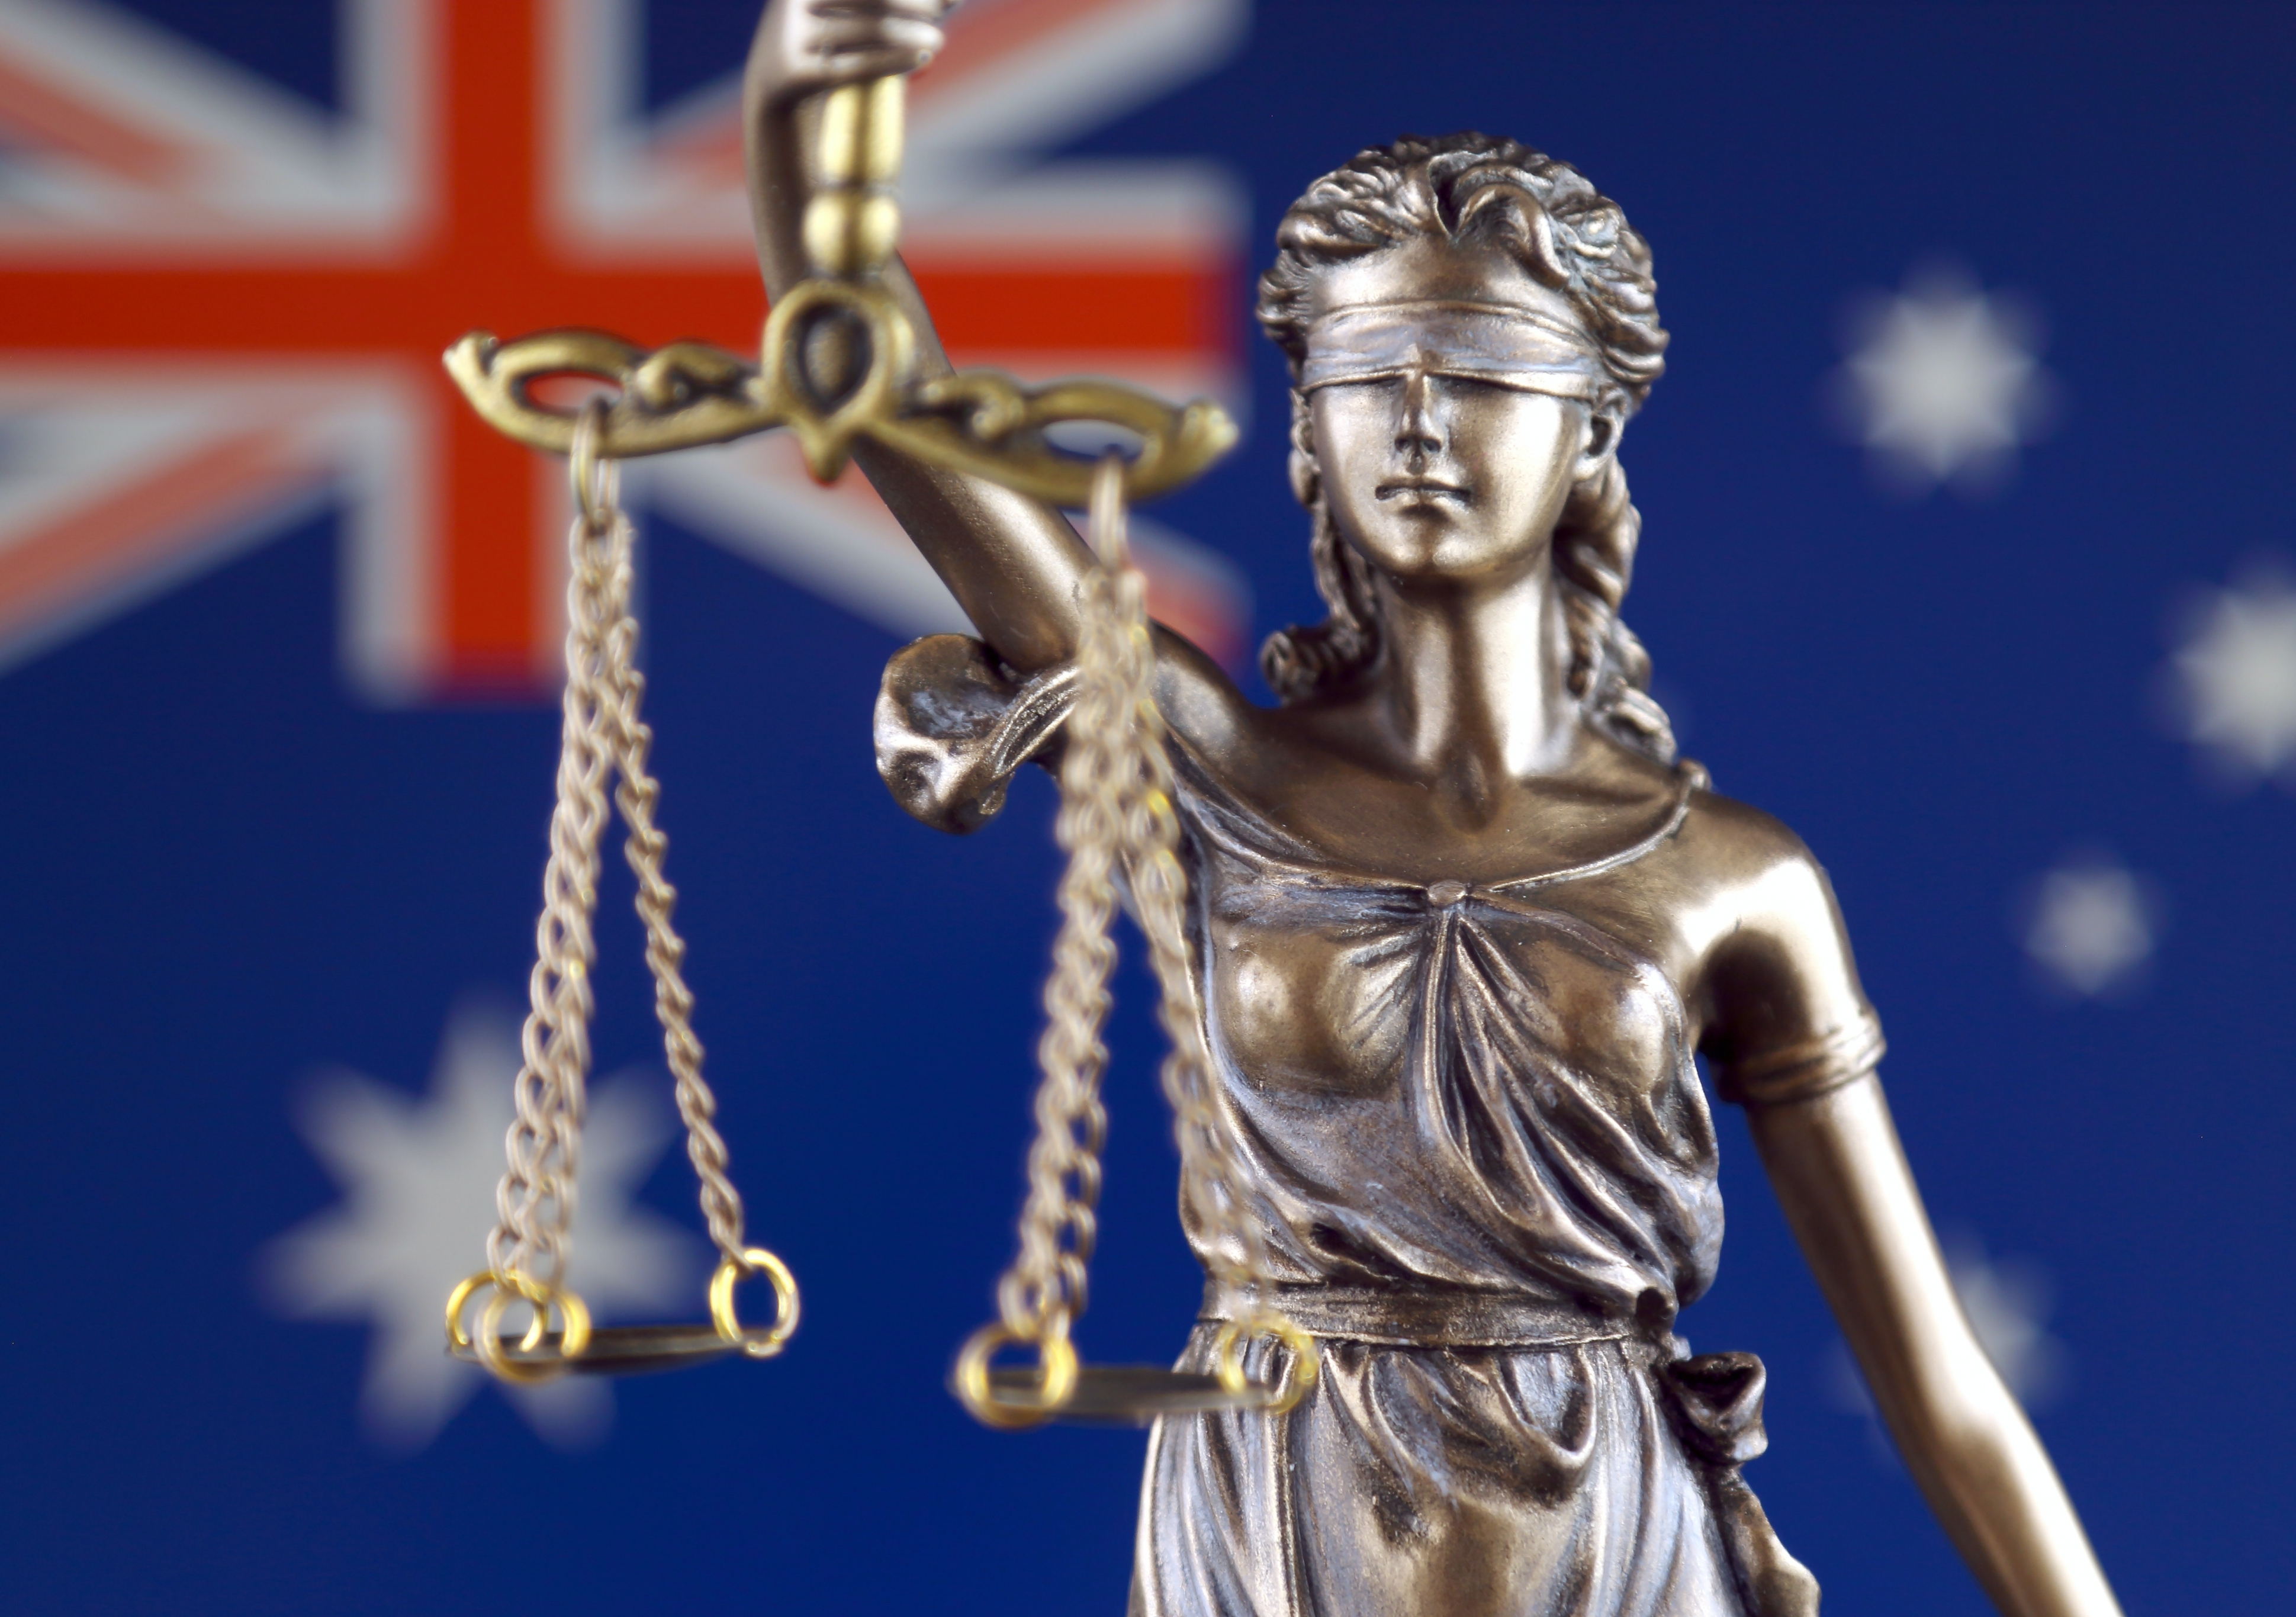 This case leaves open the prospect of compensation claims for asylum seekers who have been in detention, where no effort has been made to remove them. Photo: Shutterstock